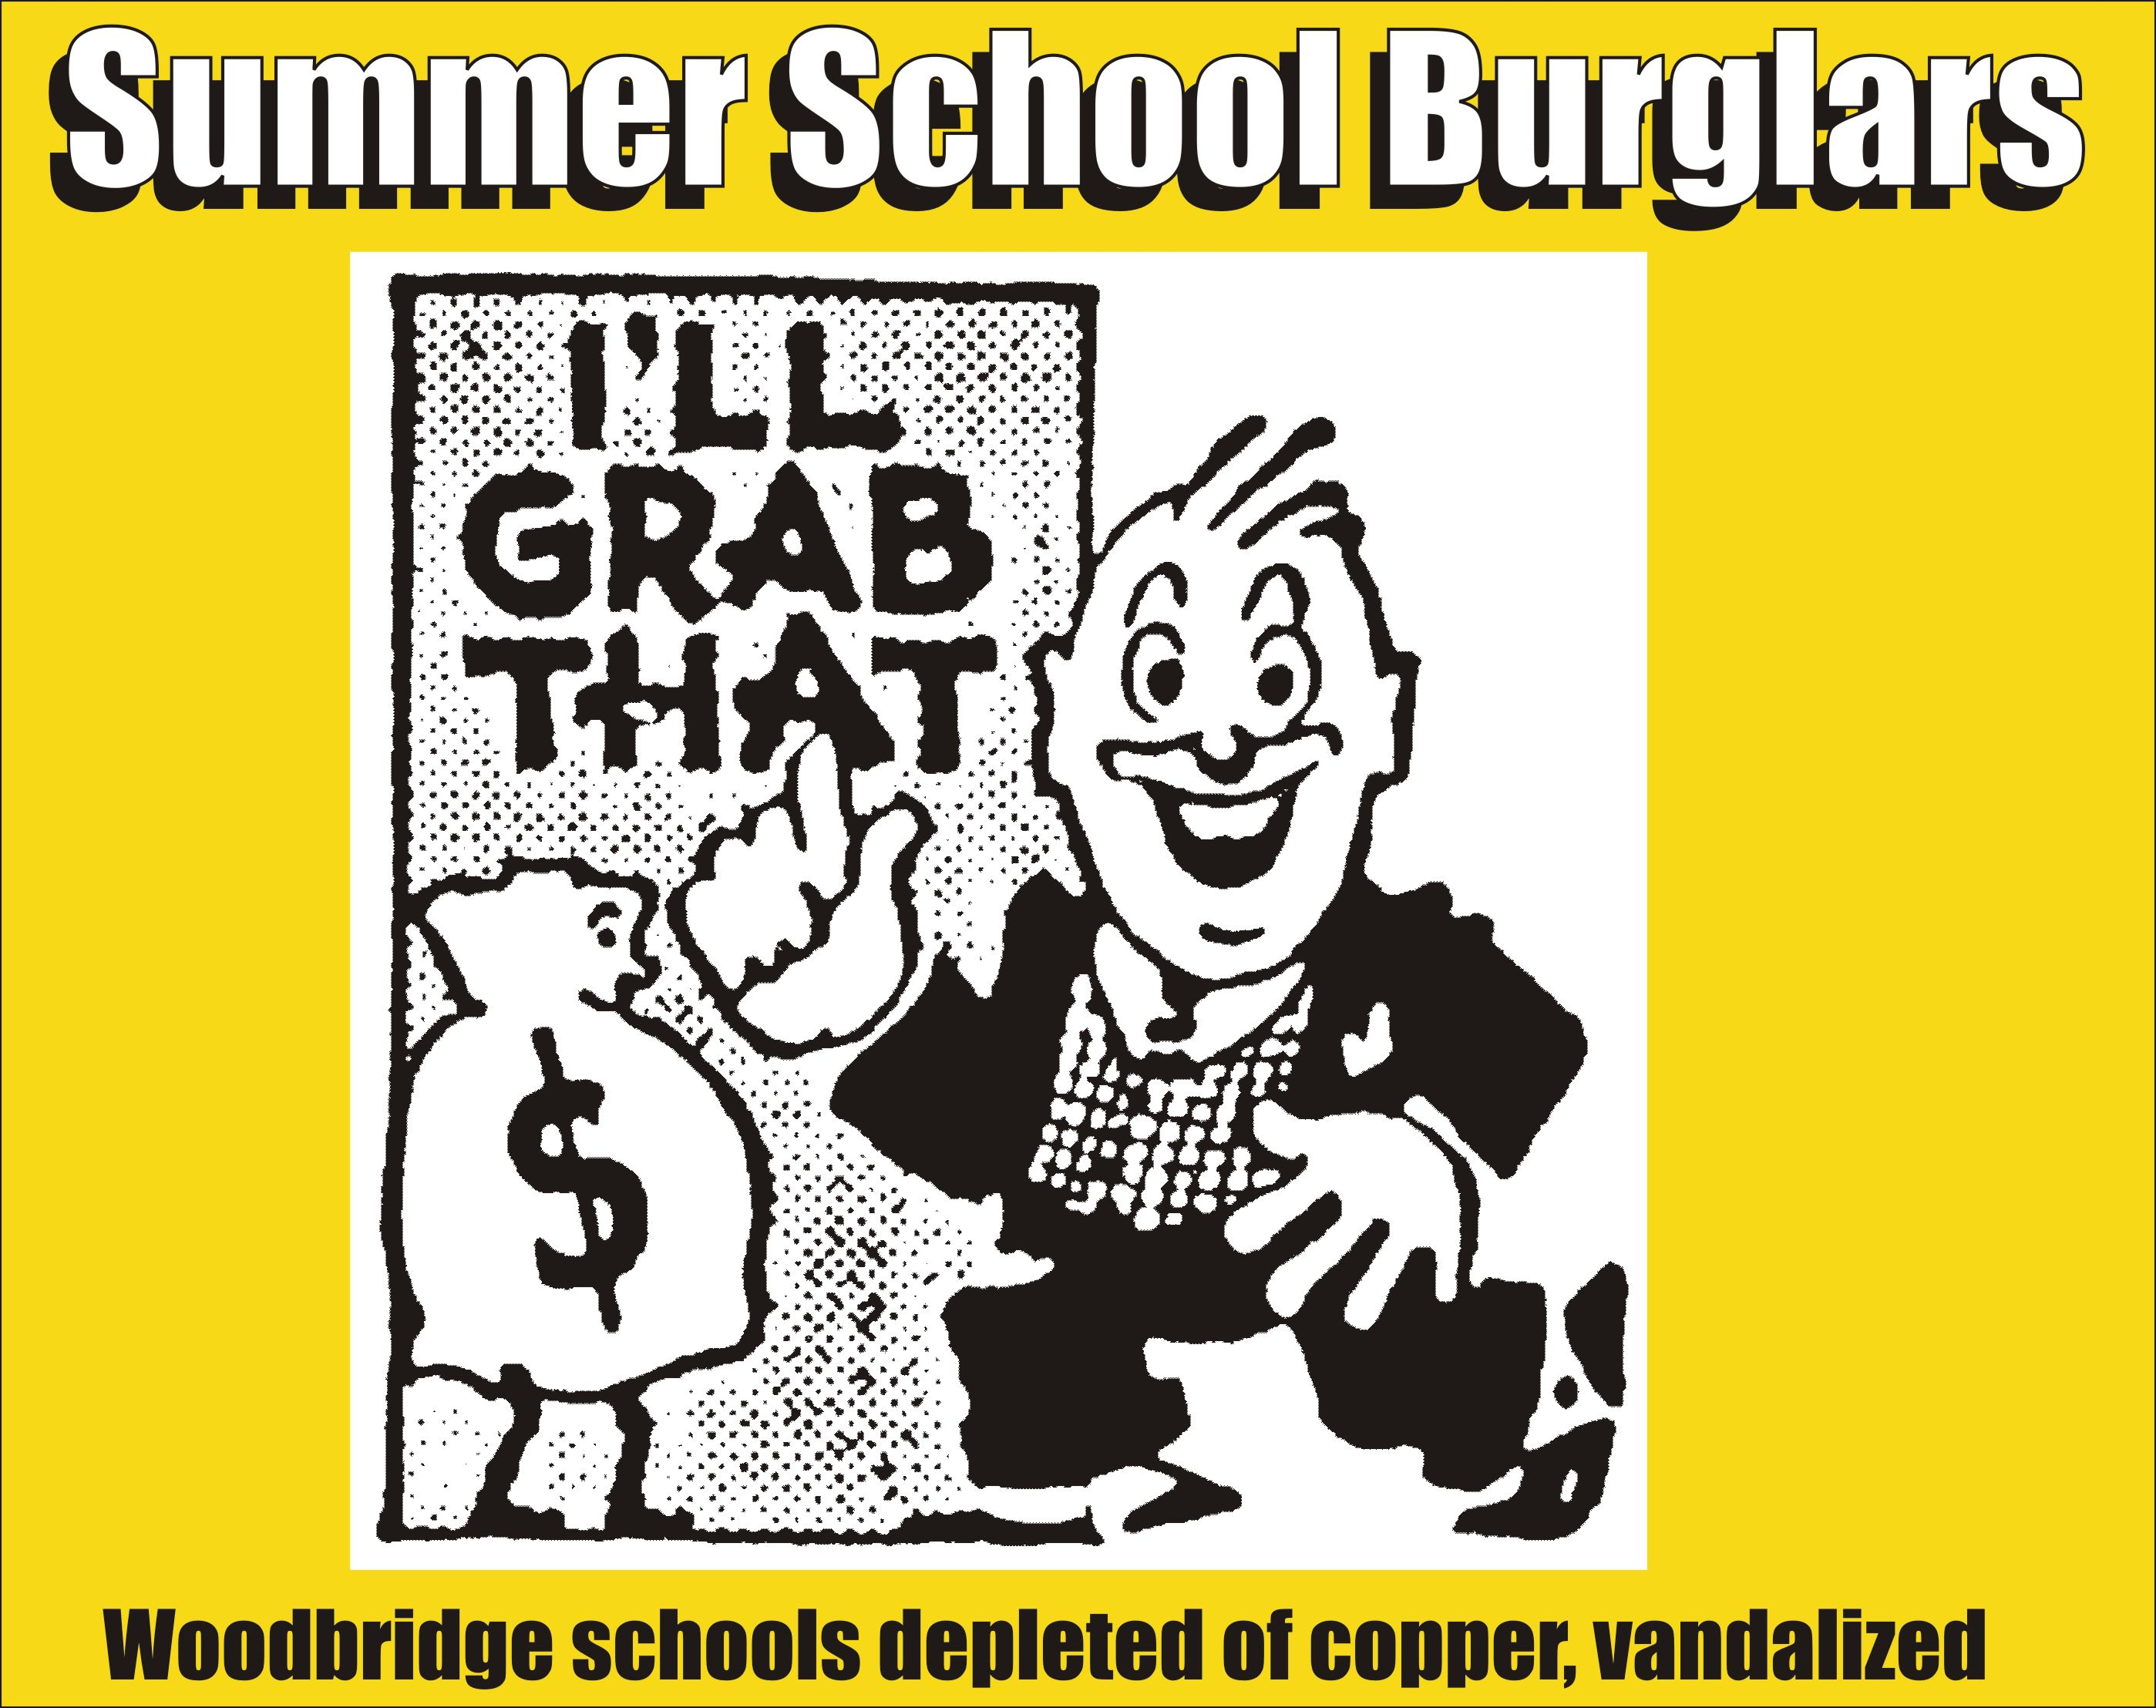 Summer School Burglars